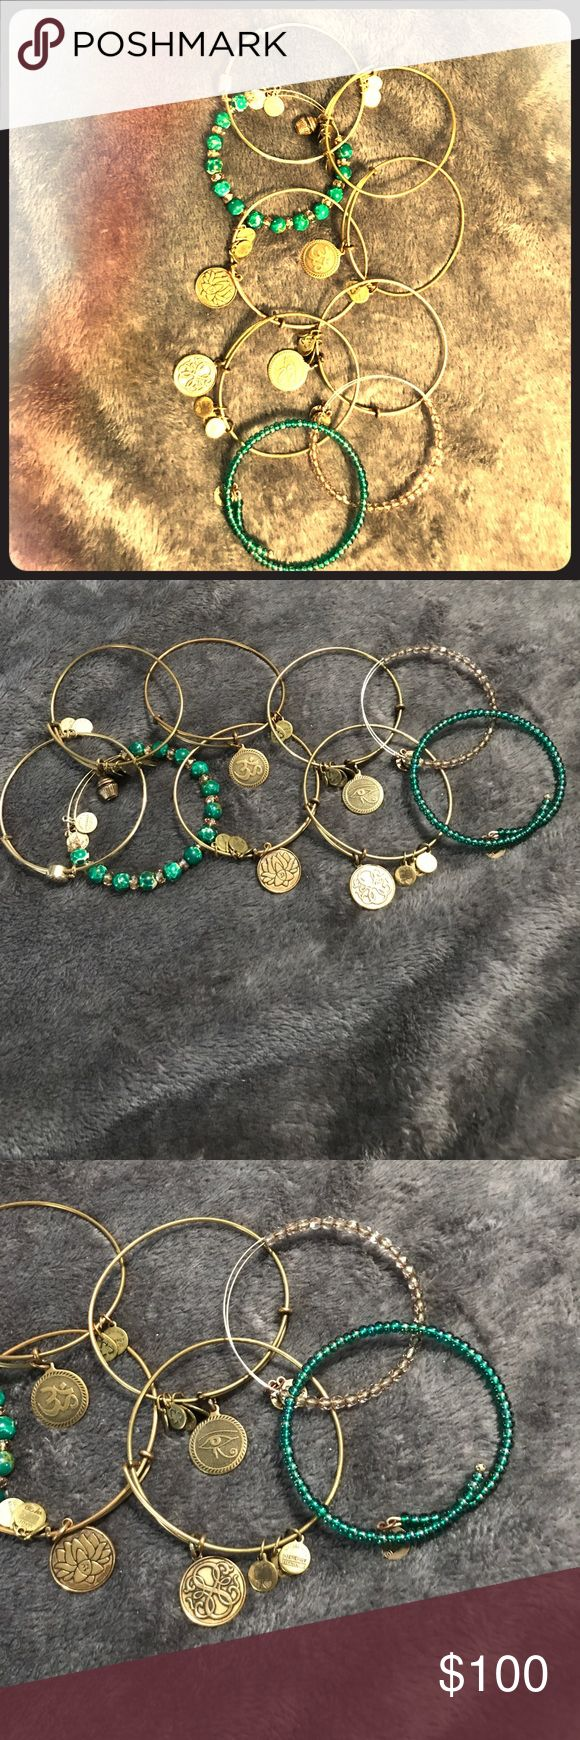 Alex and Ani Lot of 9 Bracelets 9 Alex and Ani Bangles in GUC. A mix of Silver and Gold-tone. Colorful and beautiful Beads Retail for well over $300 includes: Ani Path of Life Color Infusion Charm Bangle, pinkish beads, and green and light orange beads. Shiny Gold Finish lex and Ani Evil Eye Expandable Wire Bangle - Rafaelian Gold Finish amongst others. Alex and Ani Jewelry Bracelets